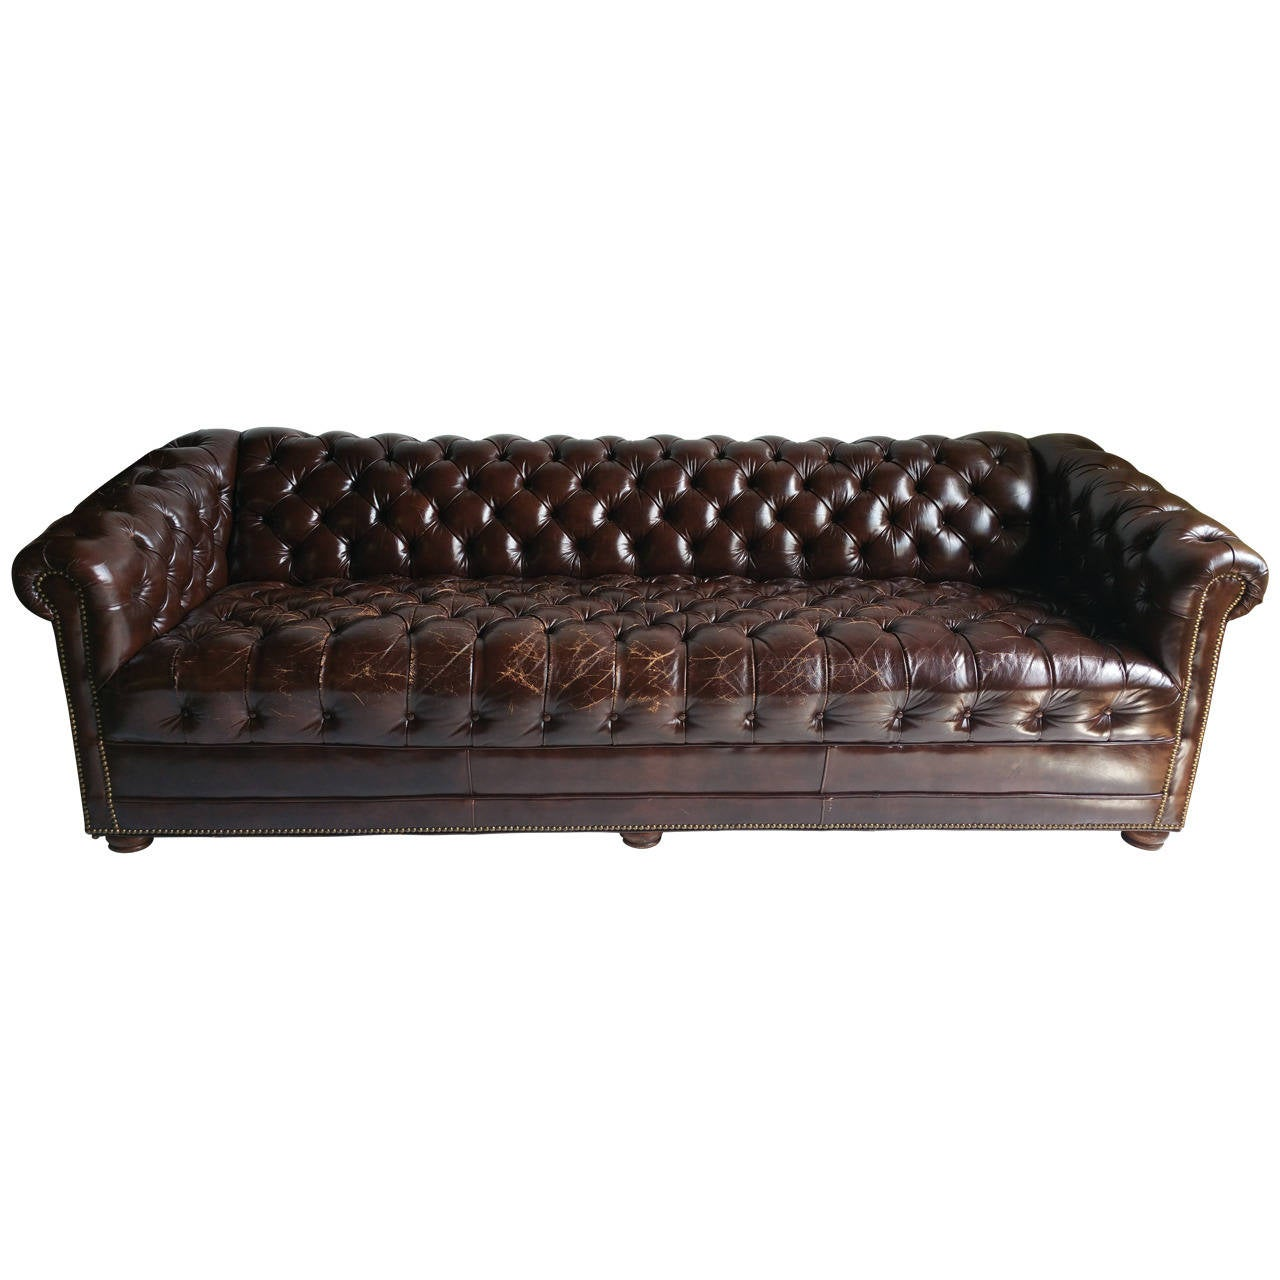 Brown Leather Button Tufted Chesterfield Sofa, Classic For Sale